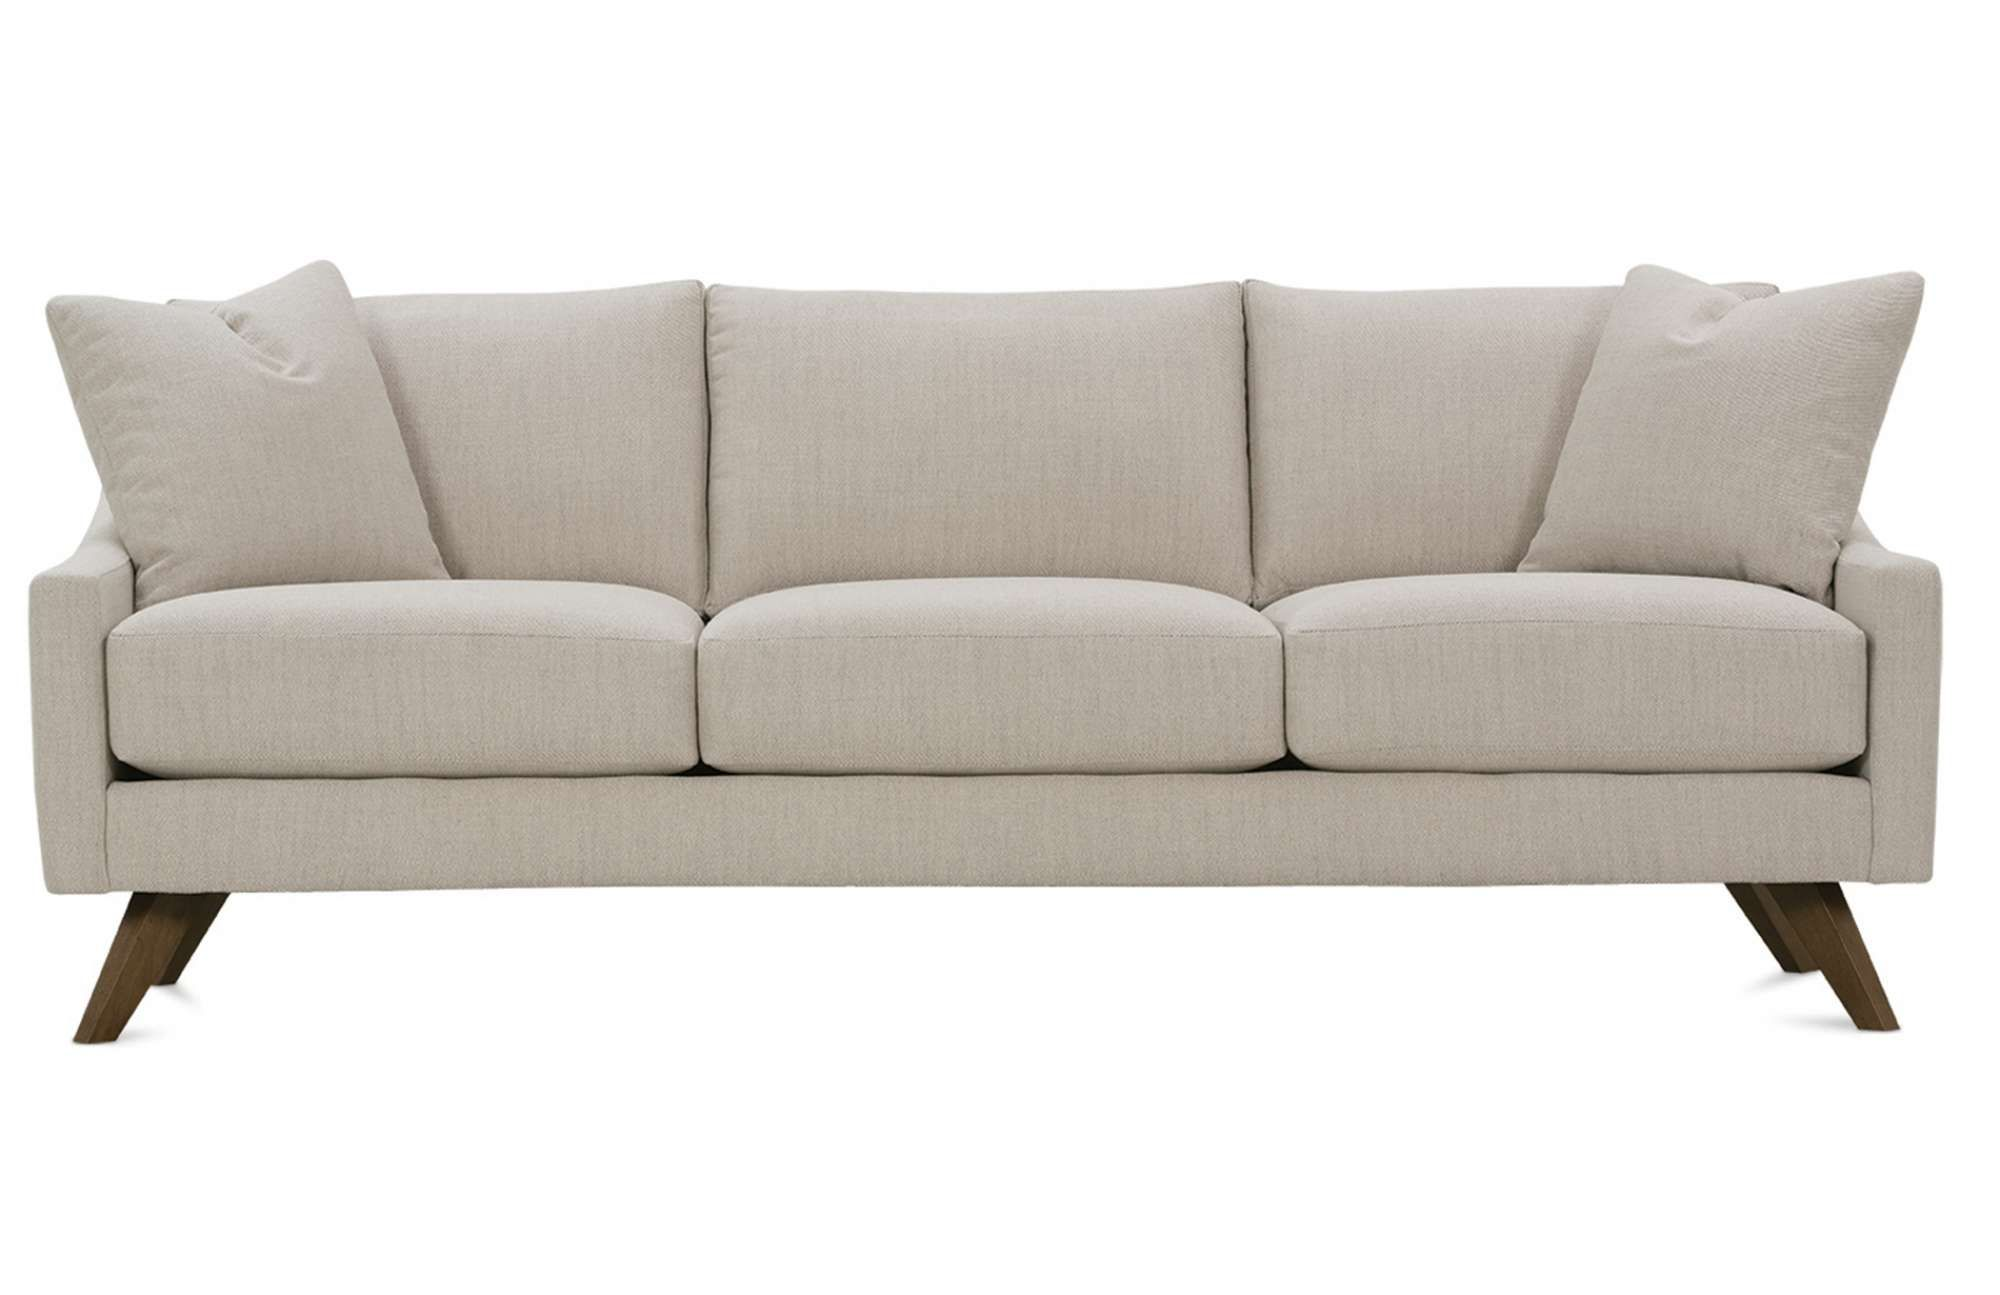 Sofa Pillows The Nash Sofa is a sleek and modern design from Rowe Furniture This style can